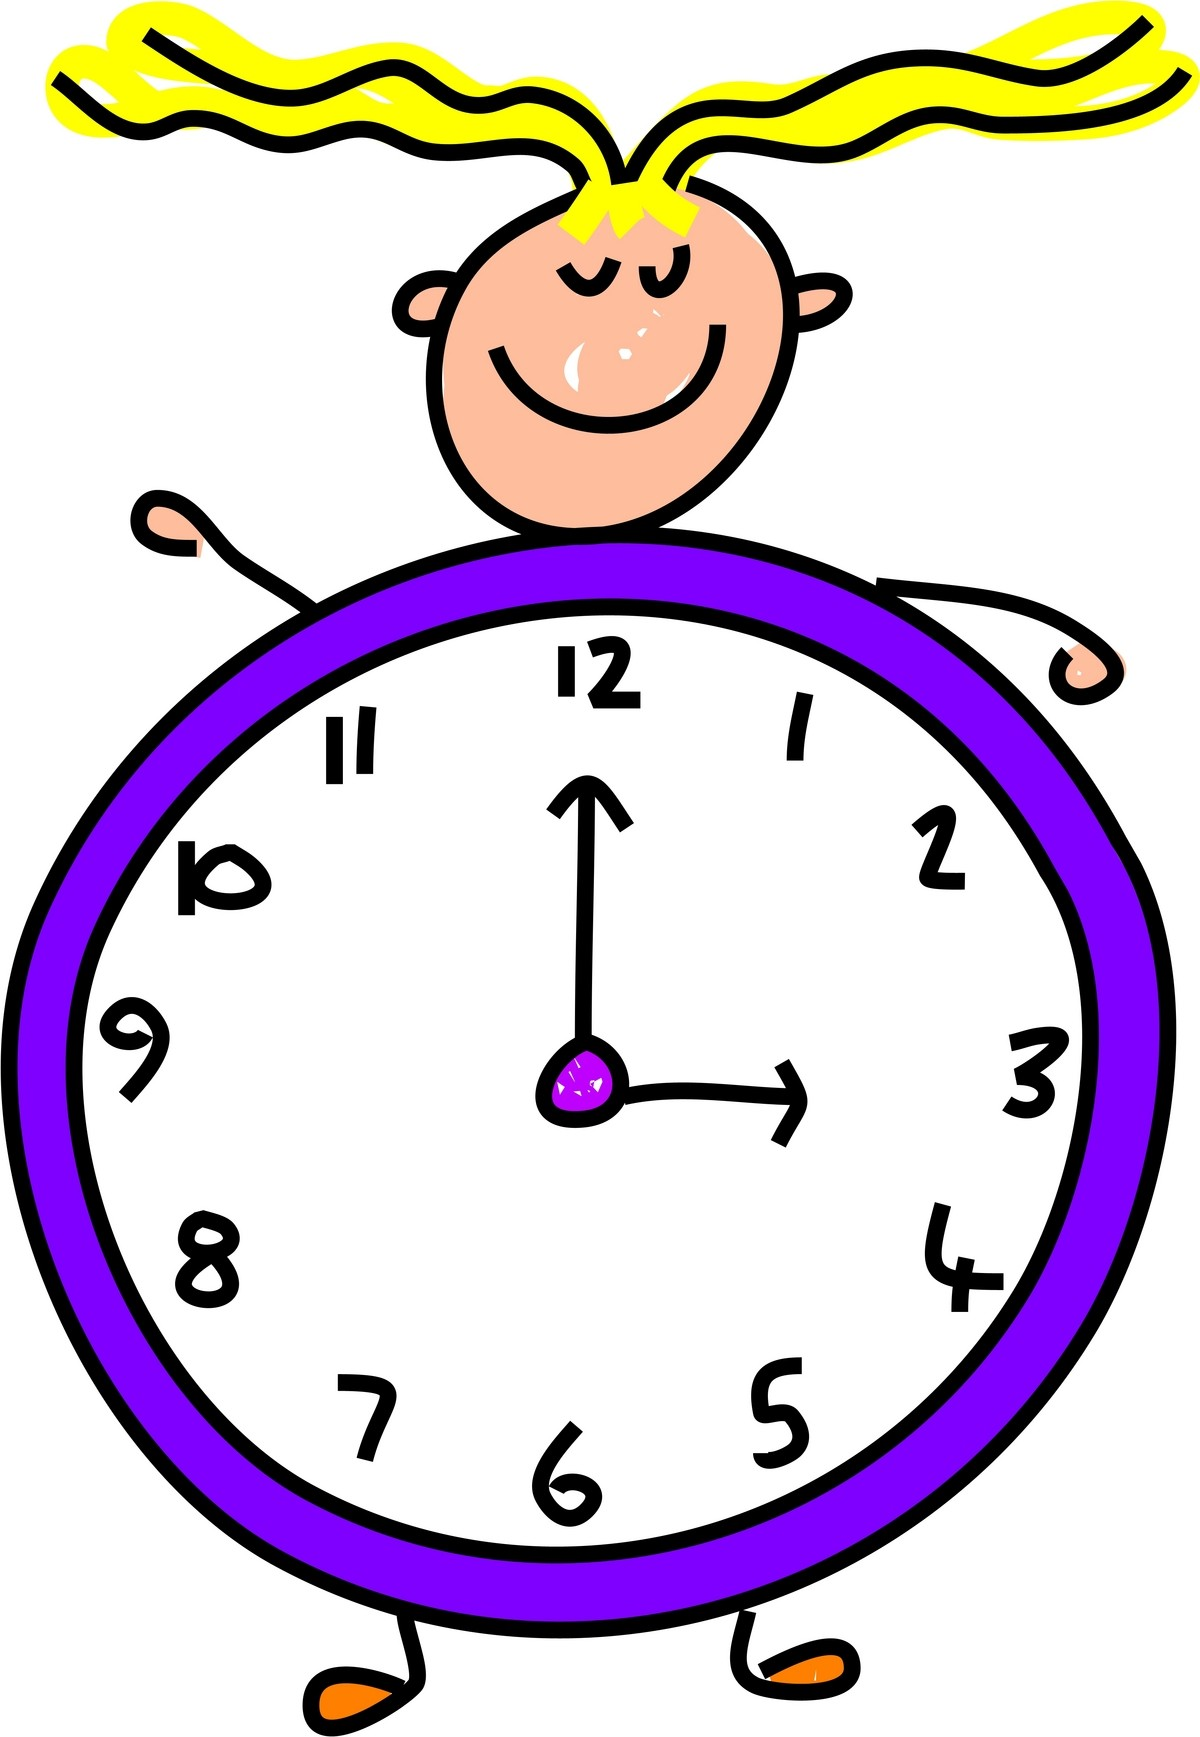 Patience clipart time. Free daily routine download